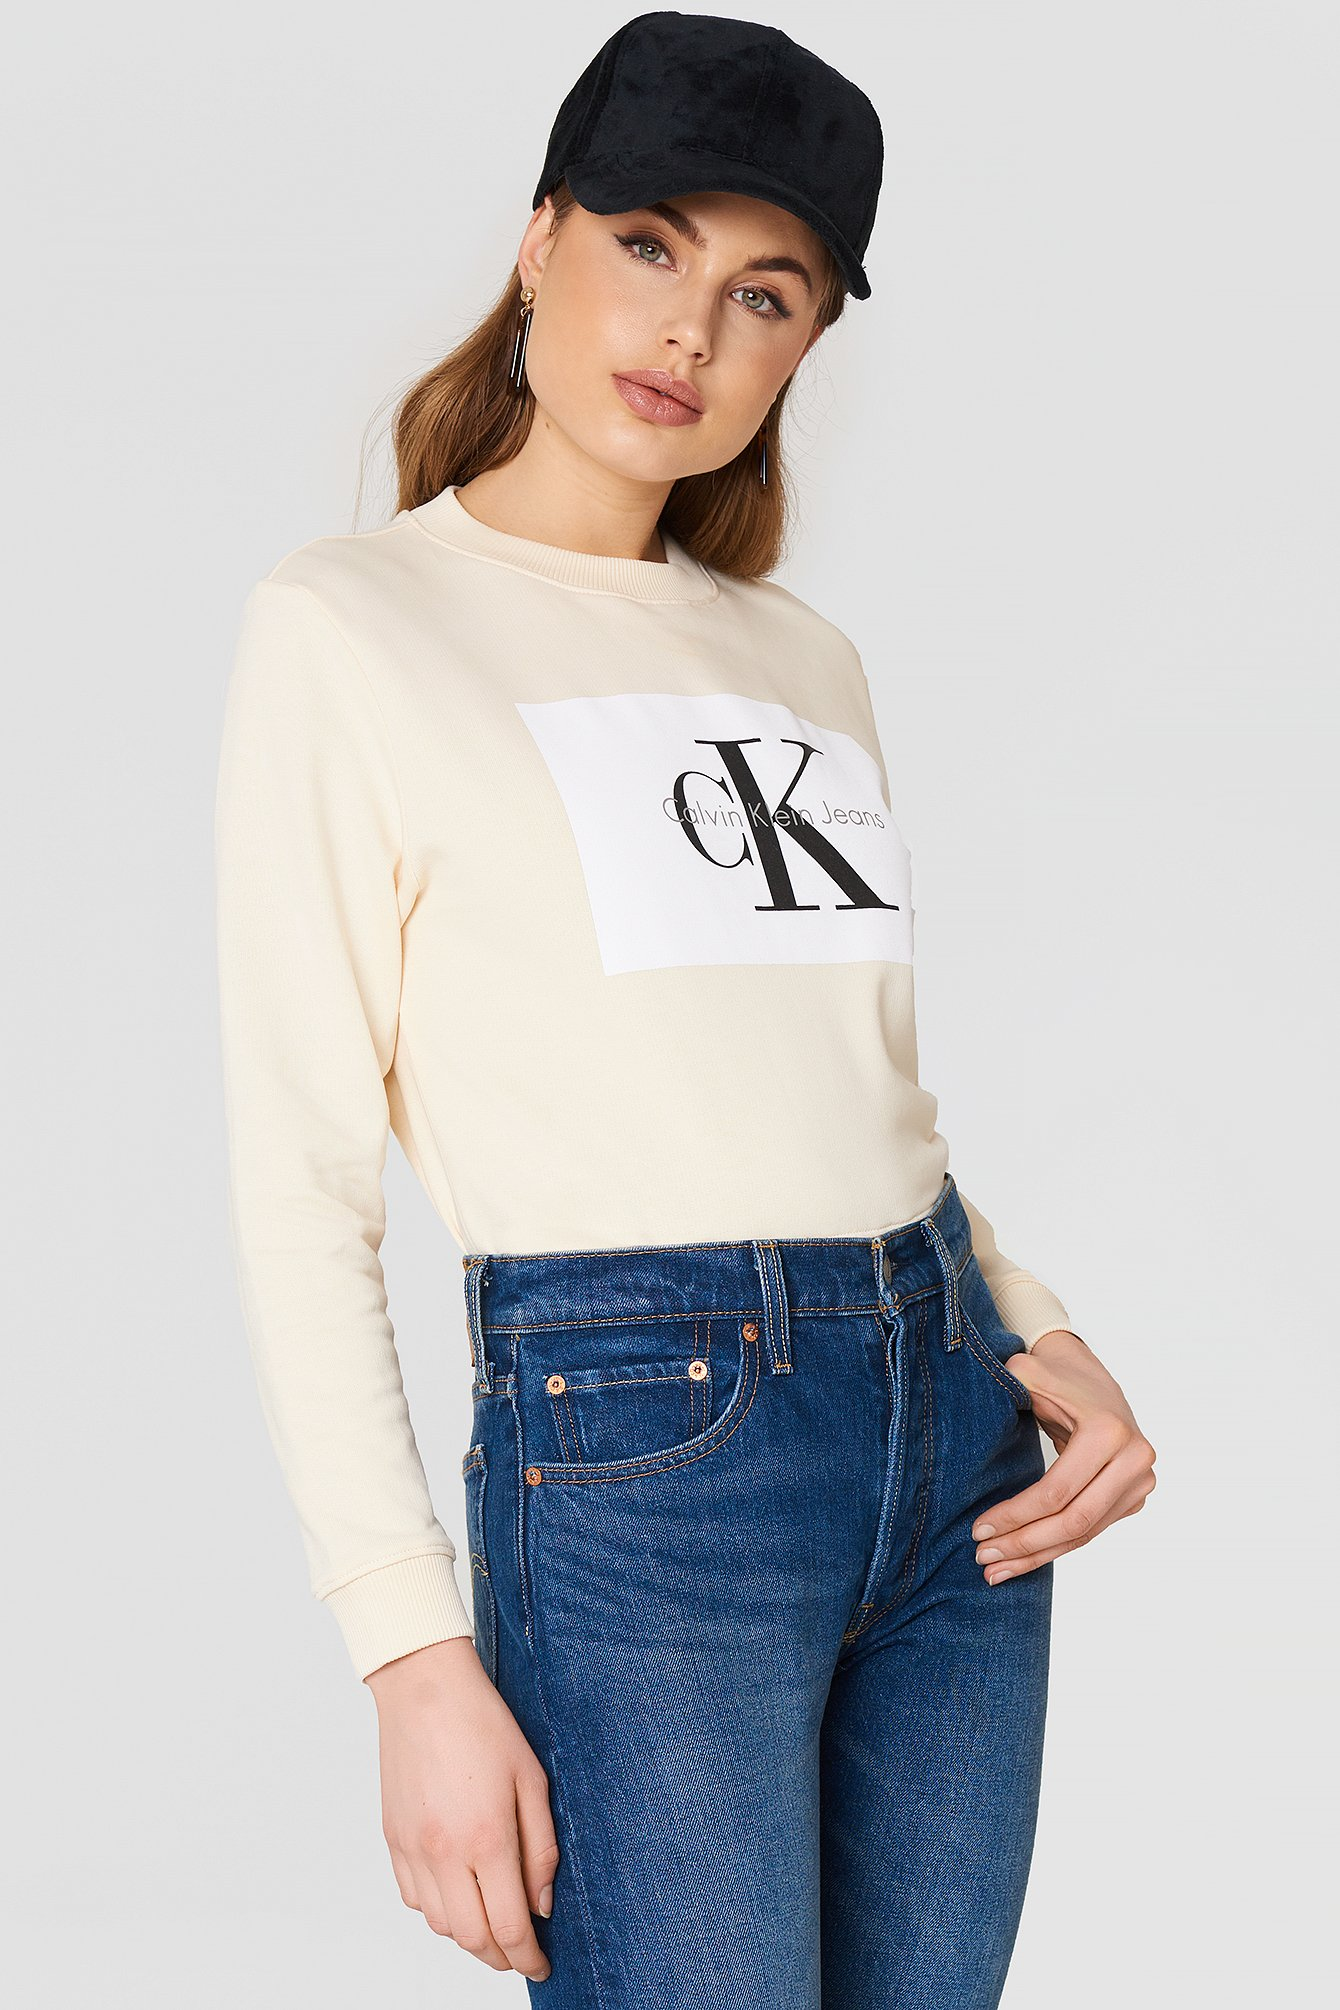 HEBE TRUE ICON SWEATER - OFFWHITE